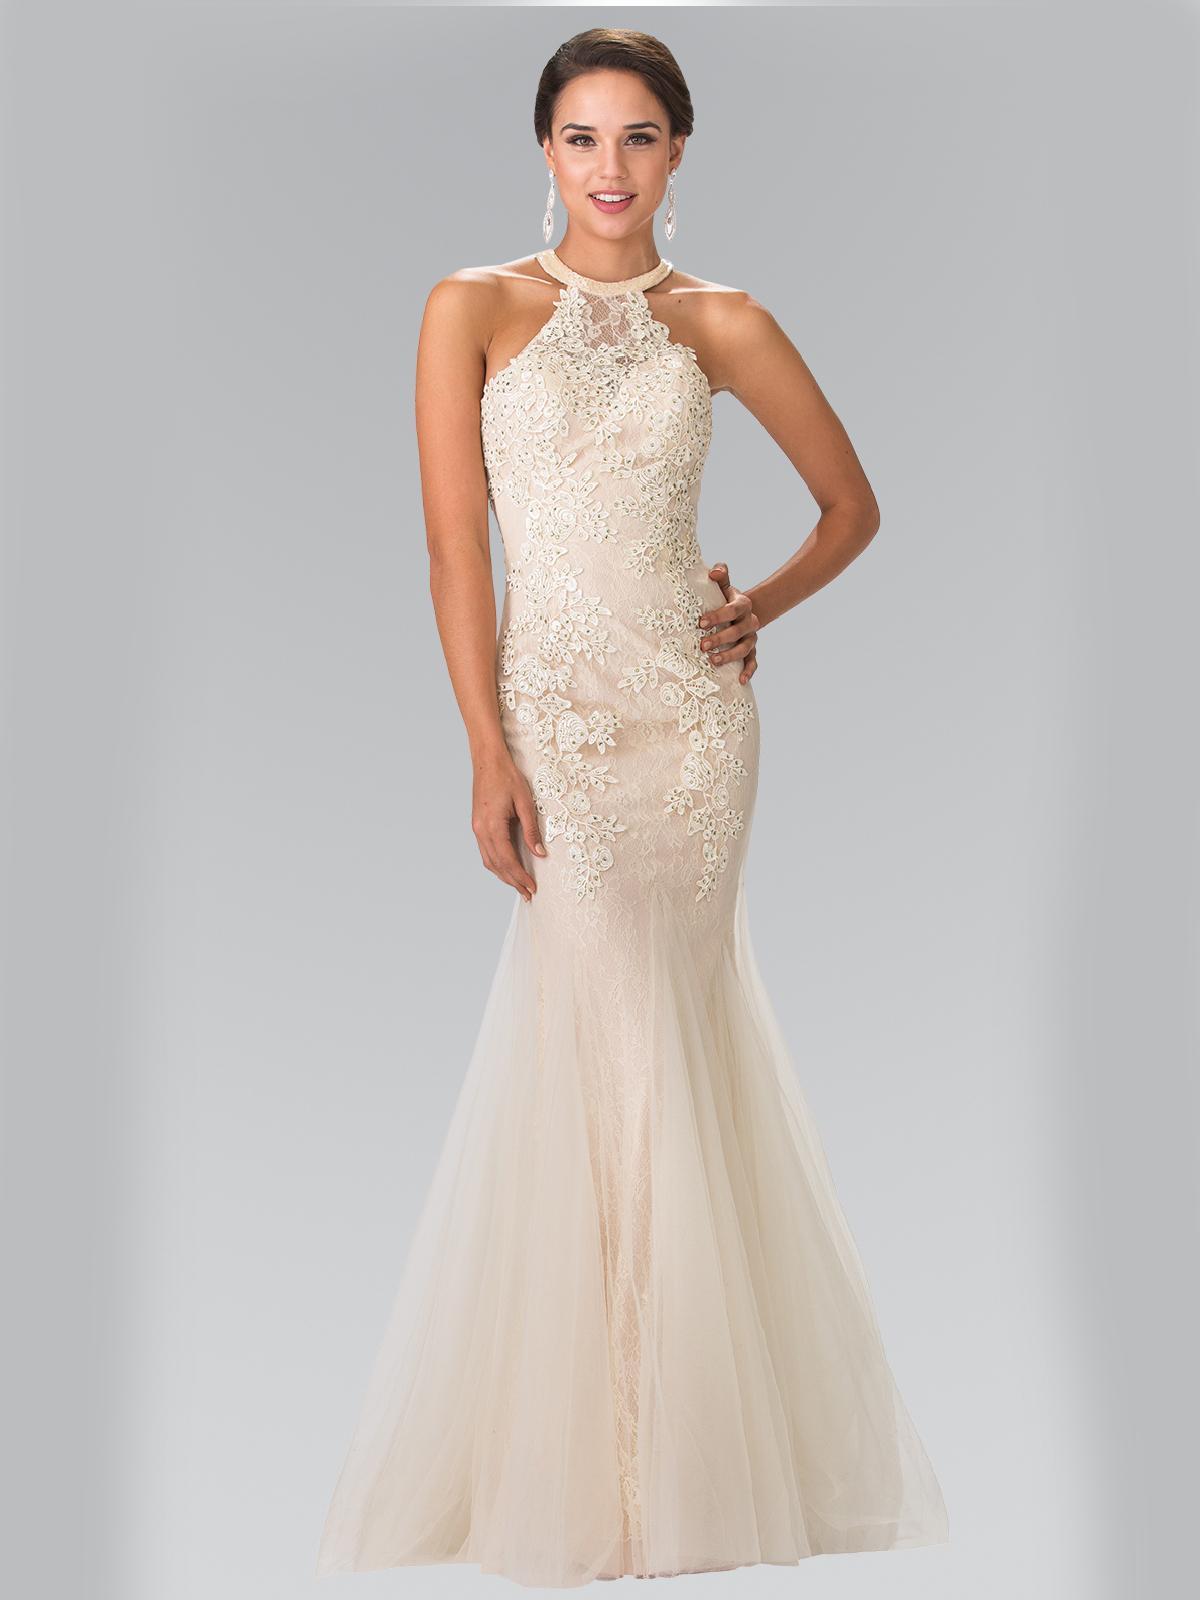 Halter Beaded Lace Tulle Long Prom Dress Sung Boutique L A